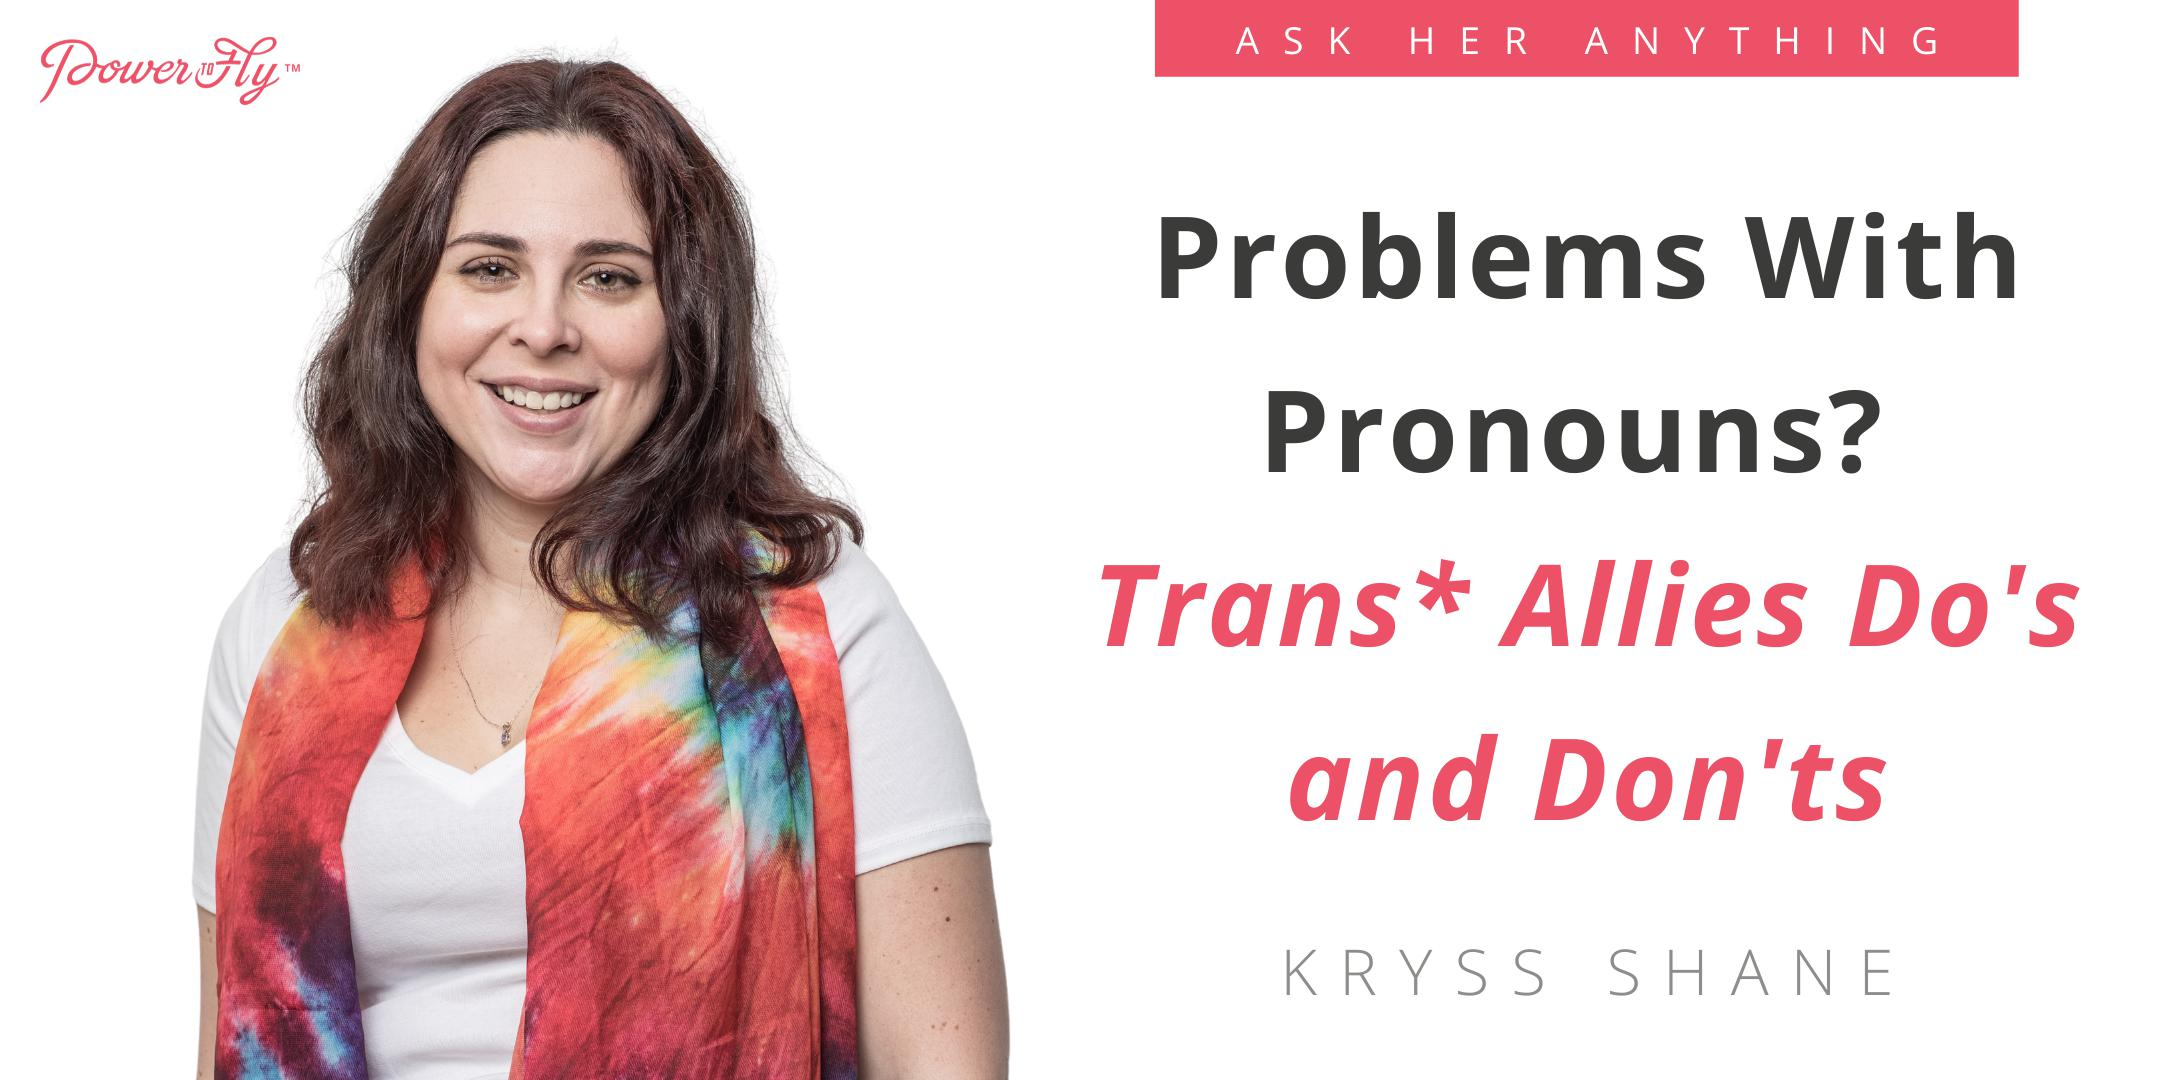 Problems With Pronouns? Trans* Allies Do's and Don'ts